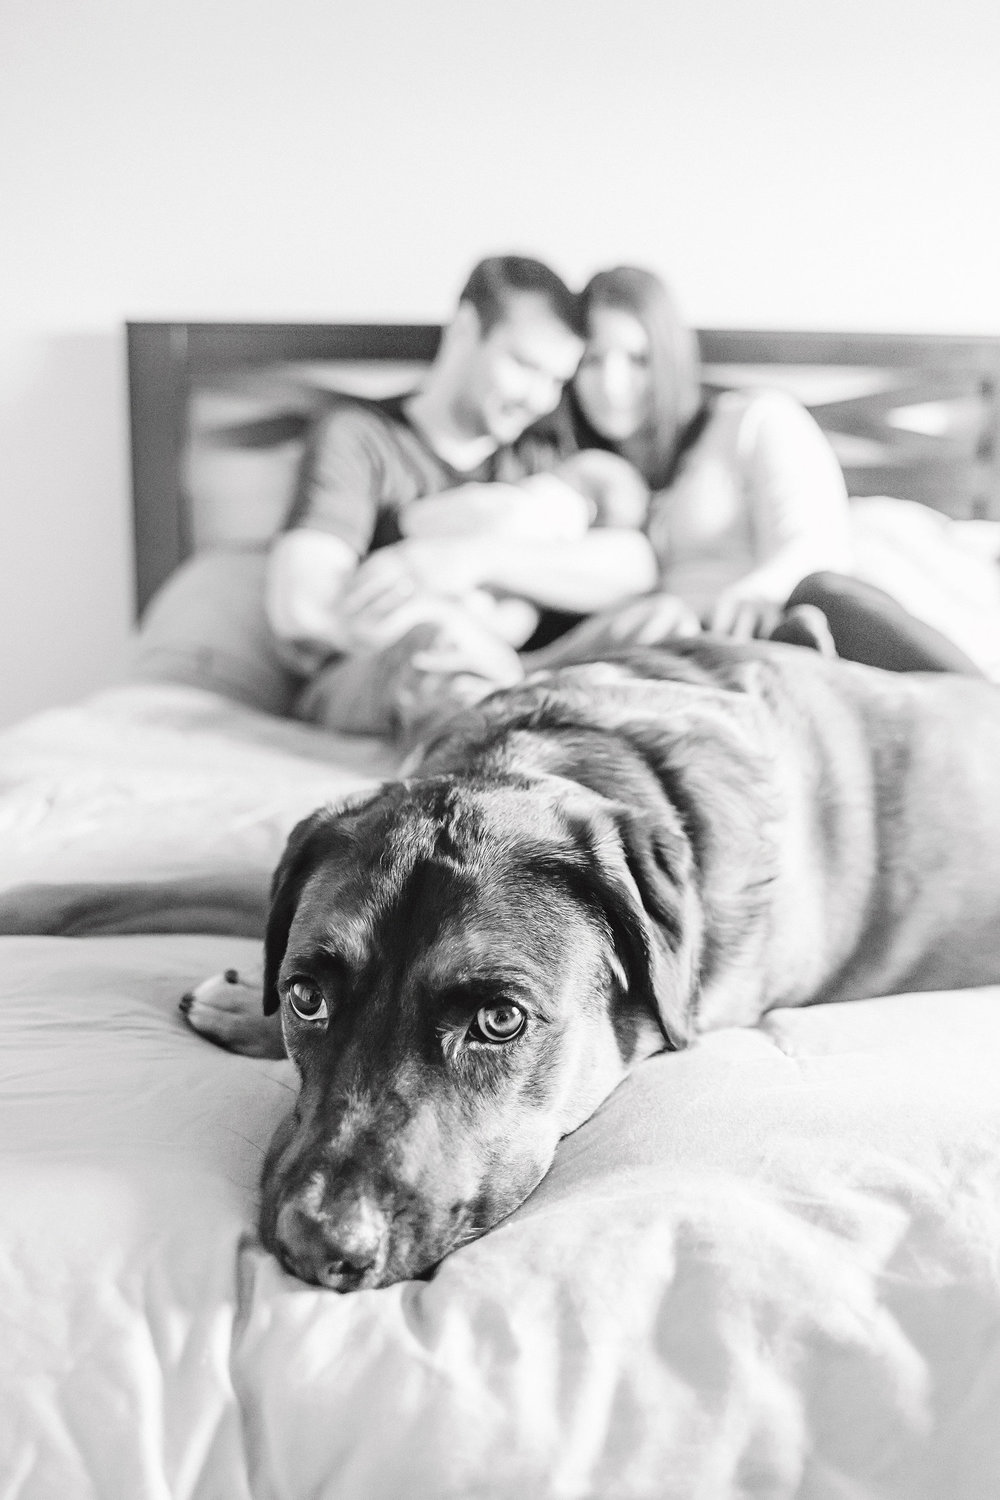 Newborn Photography with Dog_In Home Newborn Session_Cassie Schott Photography.jpeg